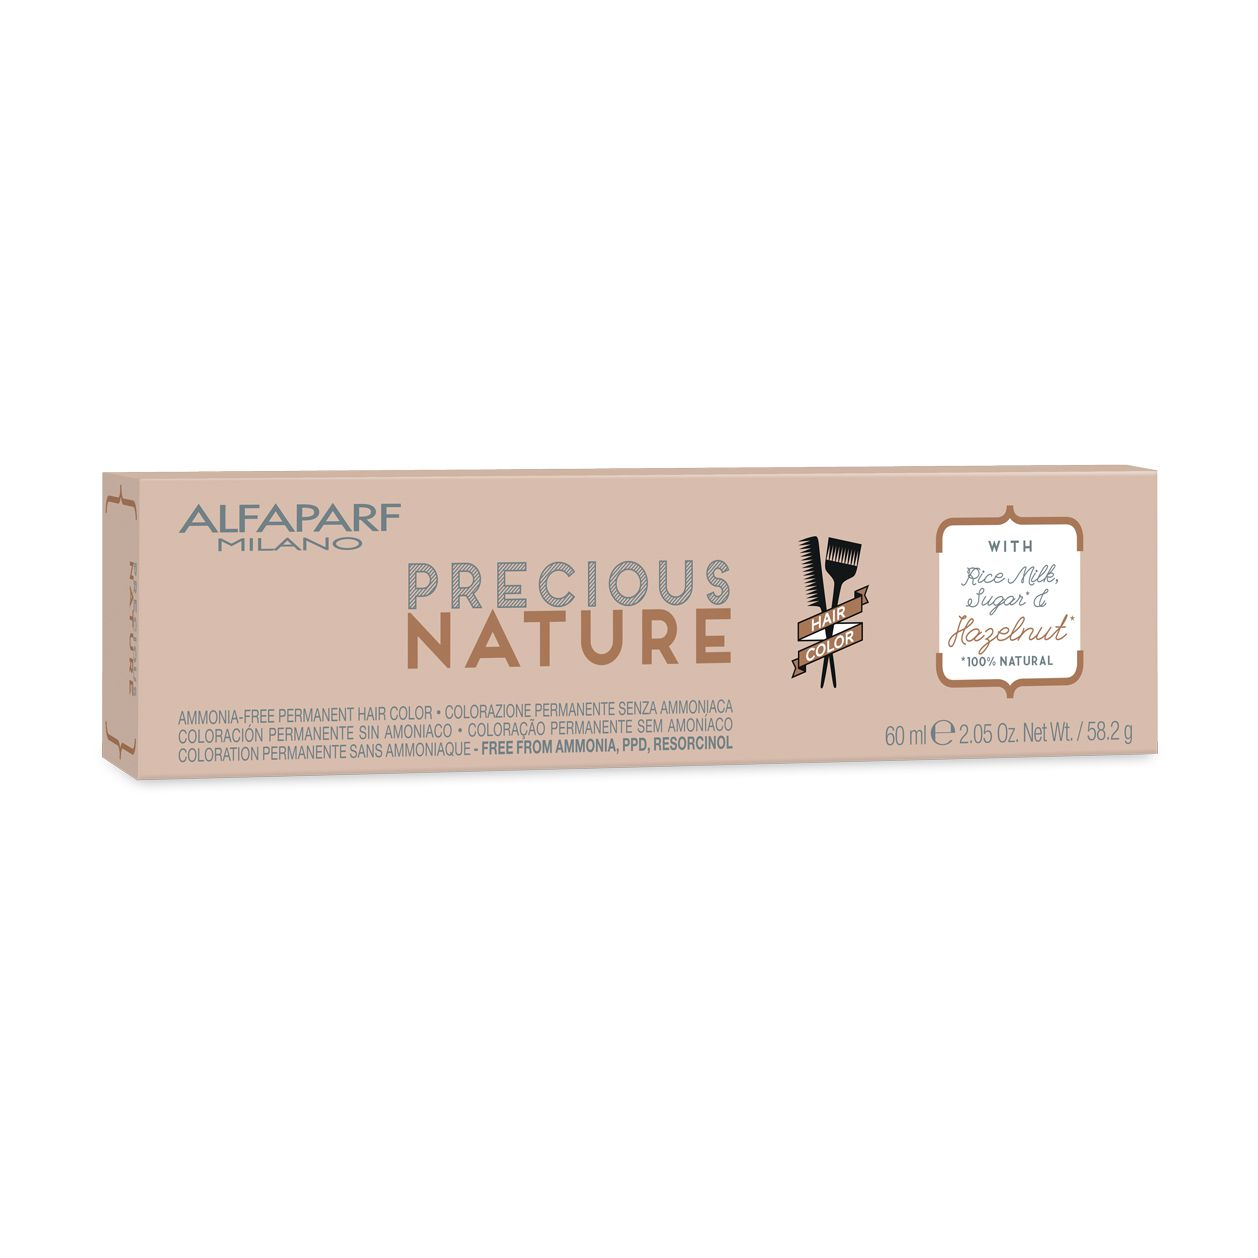 Alfaparf Milano Precious Nature Hair Color Creme de Coloração 1.11 Preto Azul 60ml